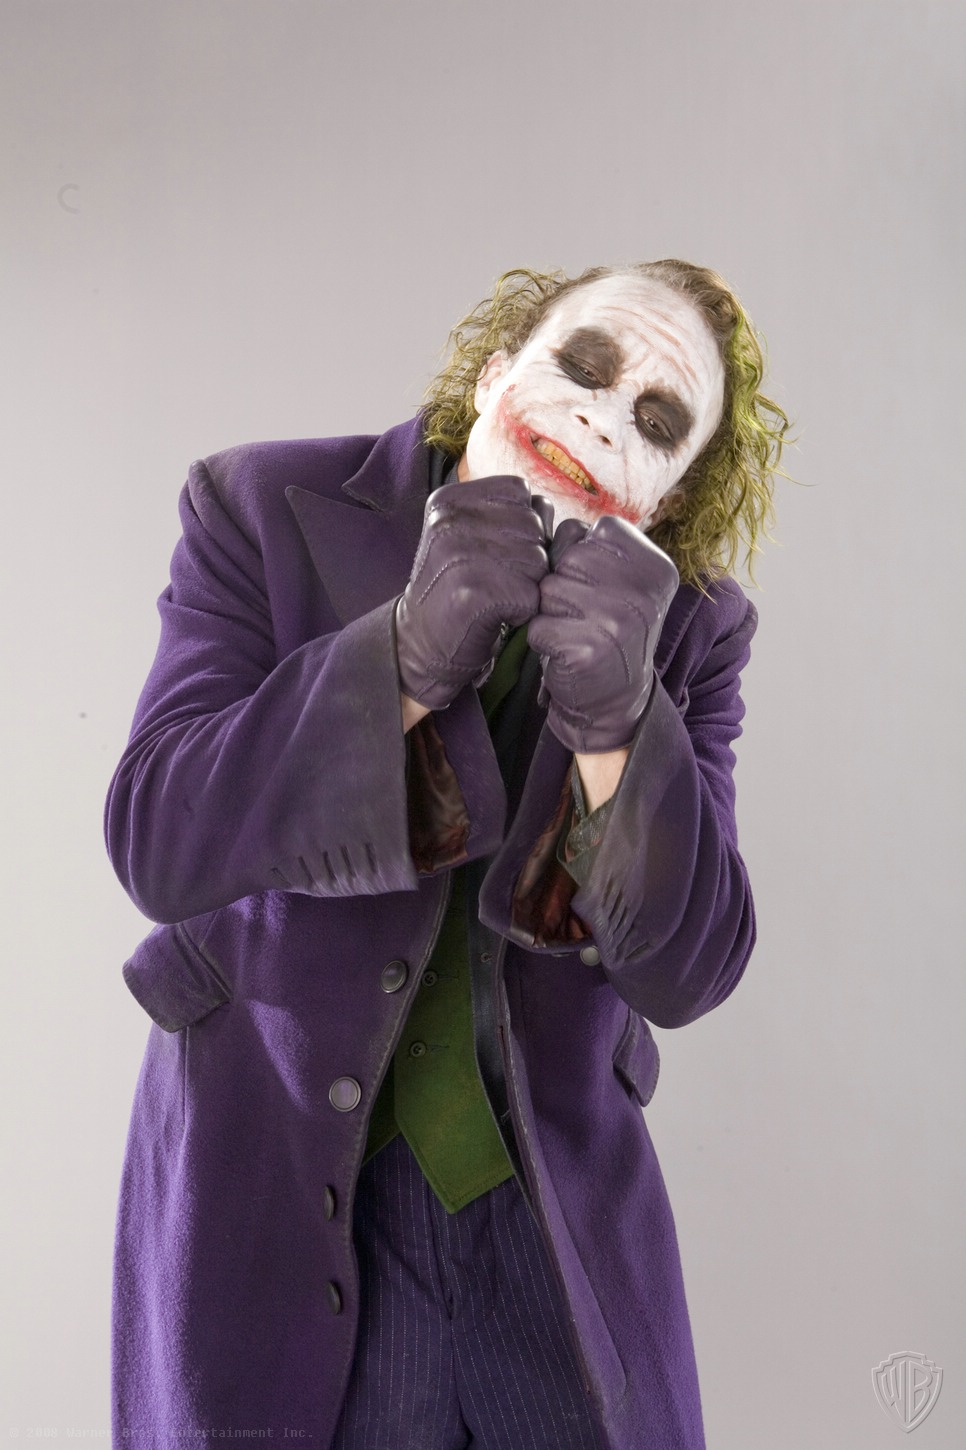 Great Promo Photos of Heath Ledger as The Joker — GeekTyrant